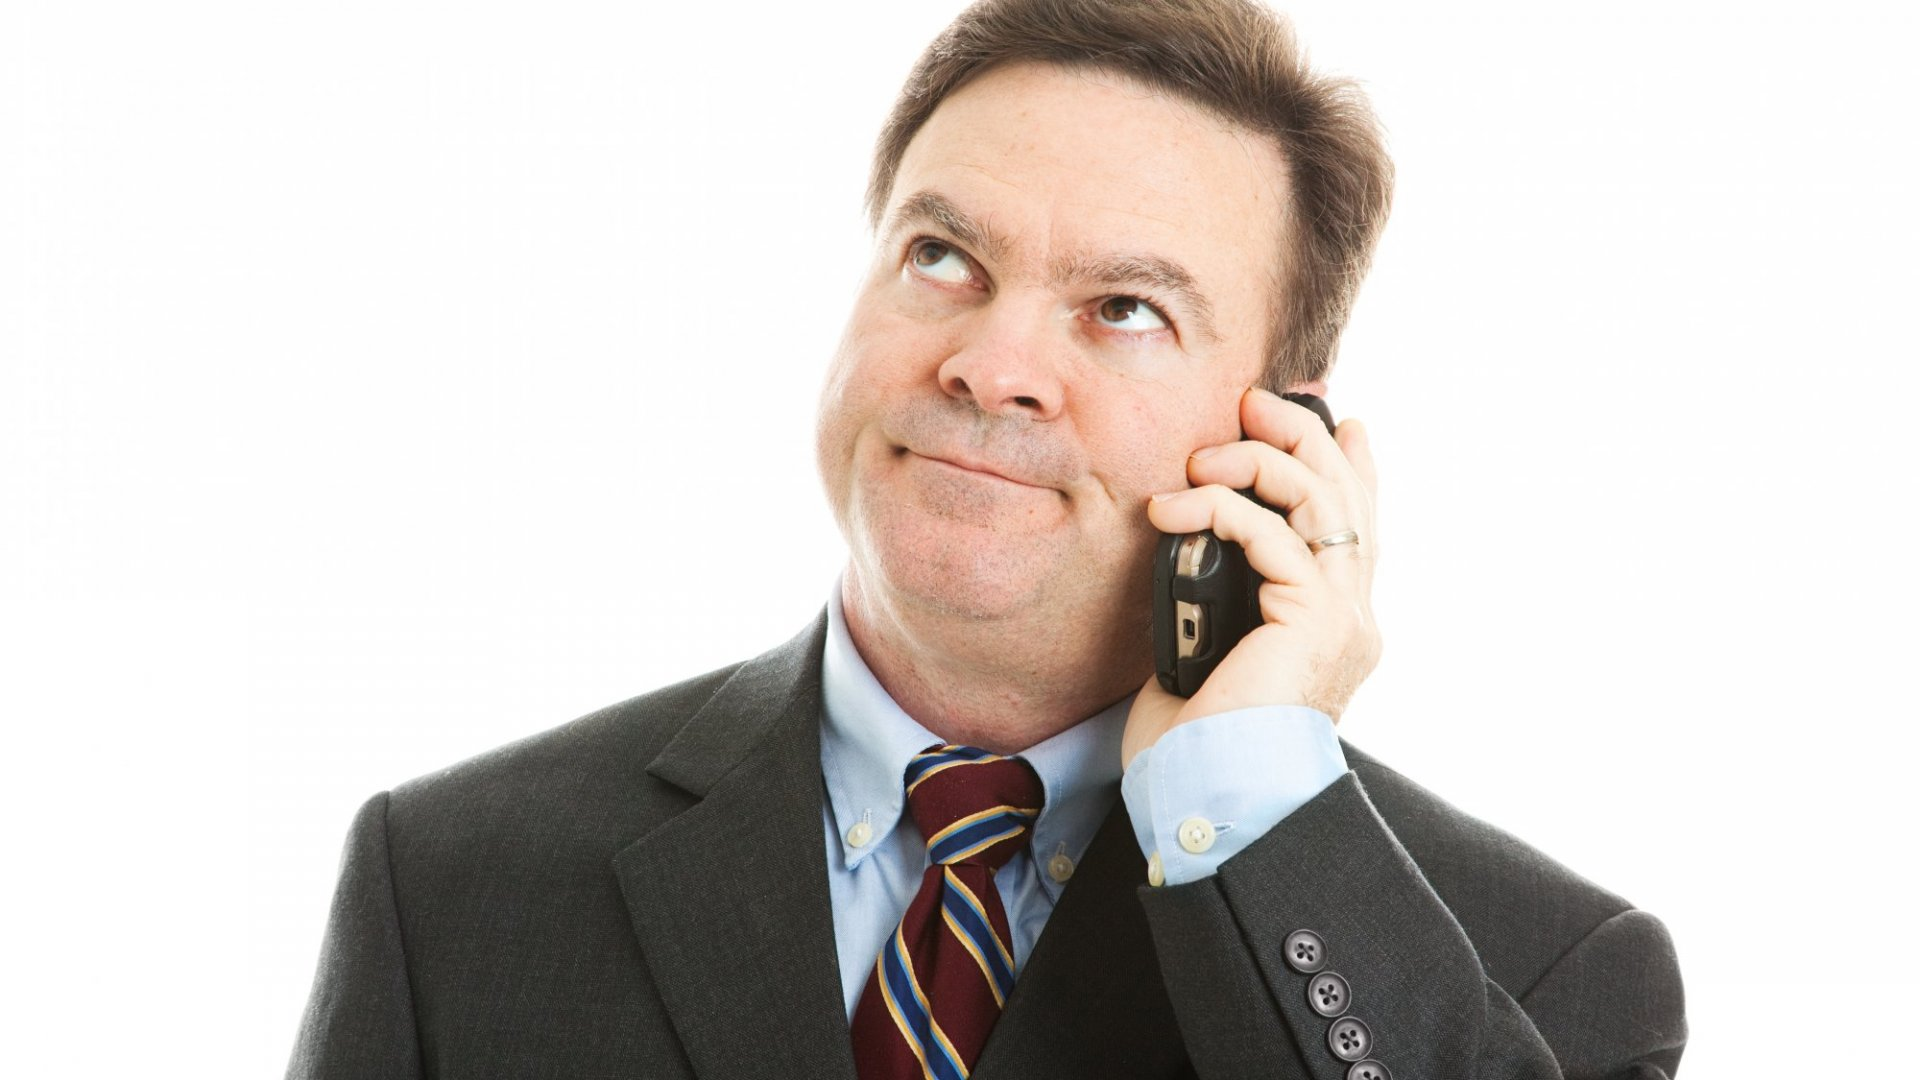 Here's Why Leaving Voice Mail Is Bad for Business